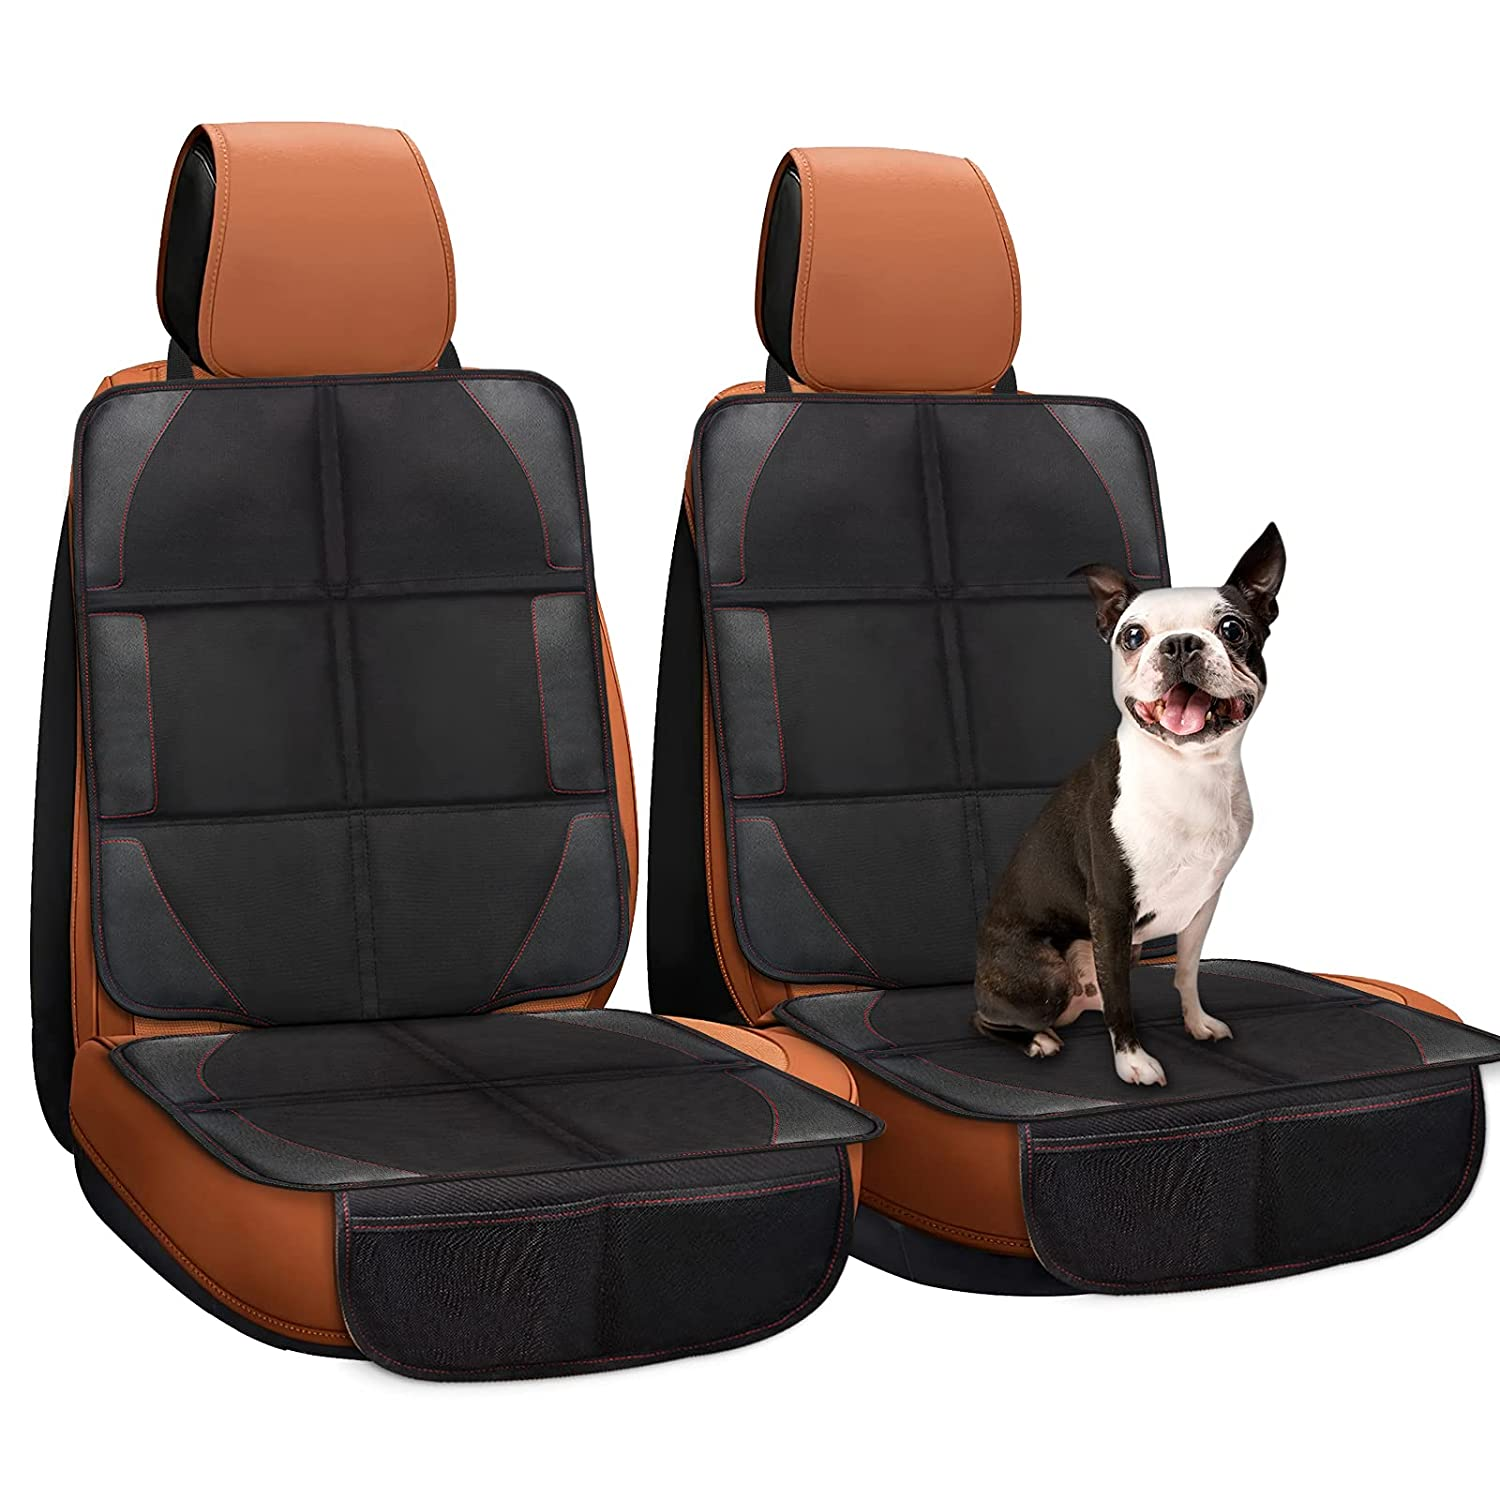 Car Seat Protector, 2 Pack Car Seat Protectors Stain Proof Protect Leather Seats Prevent Seat Mark/indents Anti-Slip for Child Baby Car Seat and Pets with Organizer Pockets for Sedan SUV Trucks